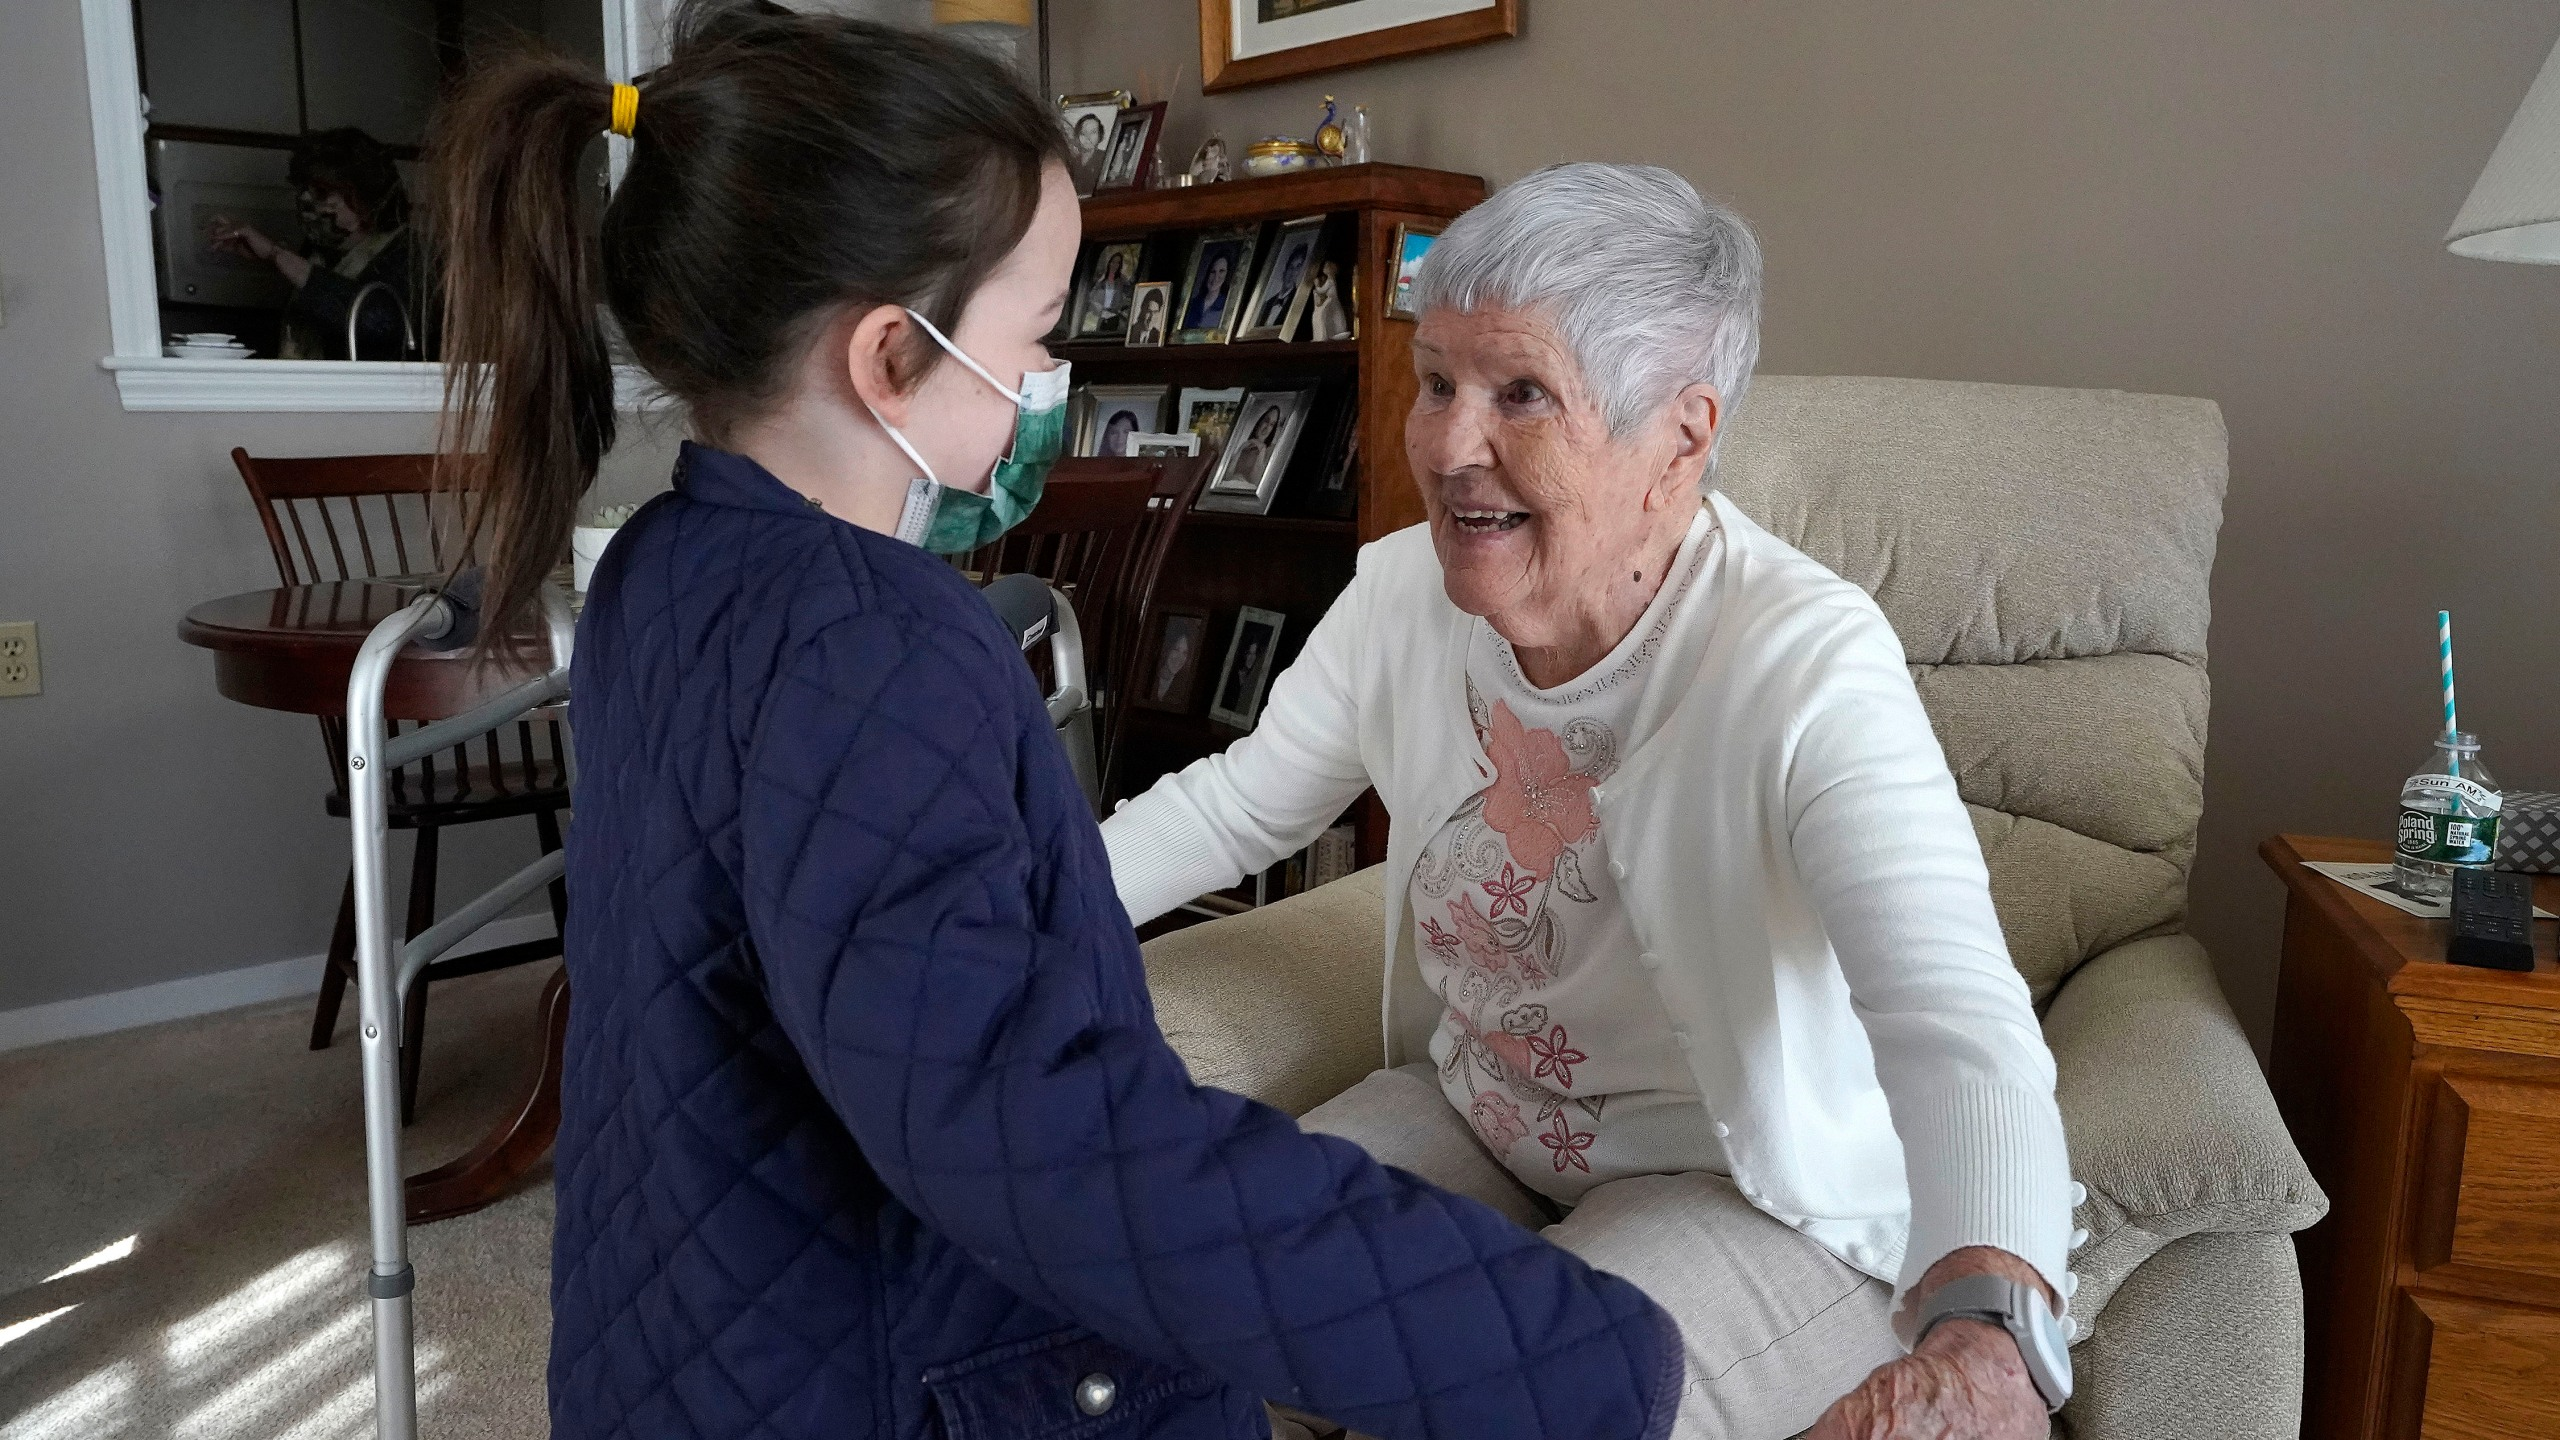 Eileen Quinn, 98, right, a resident at New Pond Village retirement community in Walpole, Mass., greets her great-granddaughter Maeve Whitcomb, 6, at the retirement community in Walpole on March 21, 2021. (Steven Senne/Associated Press)